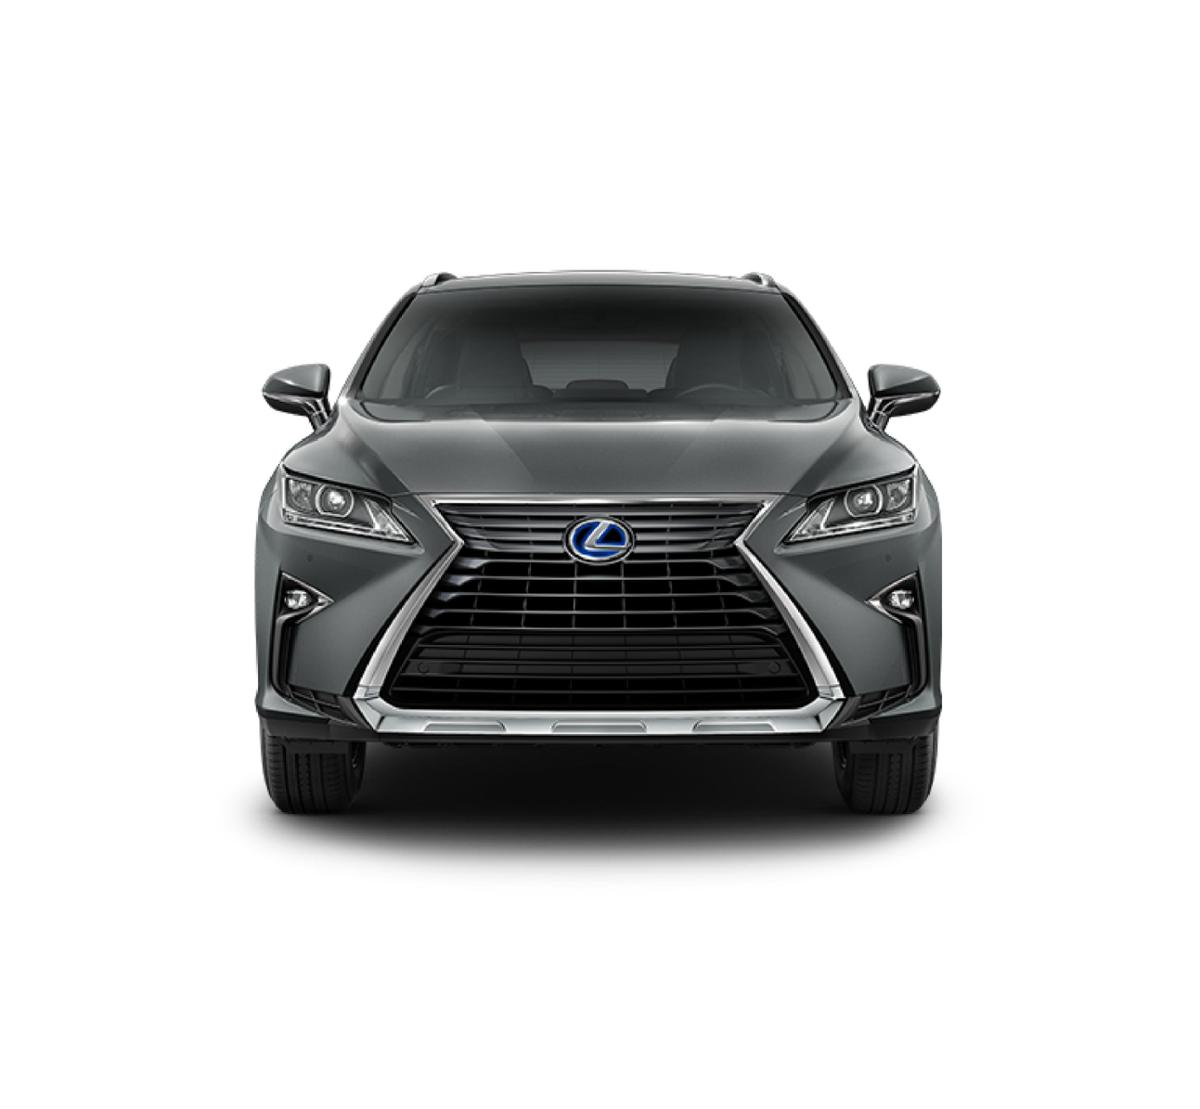 Lexus Dealership In Va: New 2019 Lexus RX 450hL At Lexus Of Watertown, Your Boston